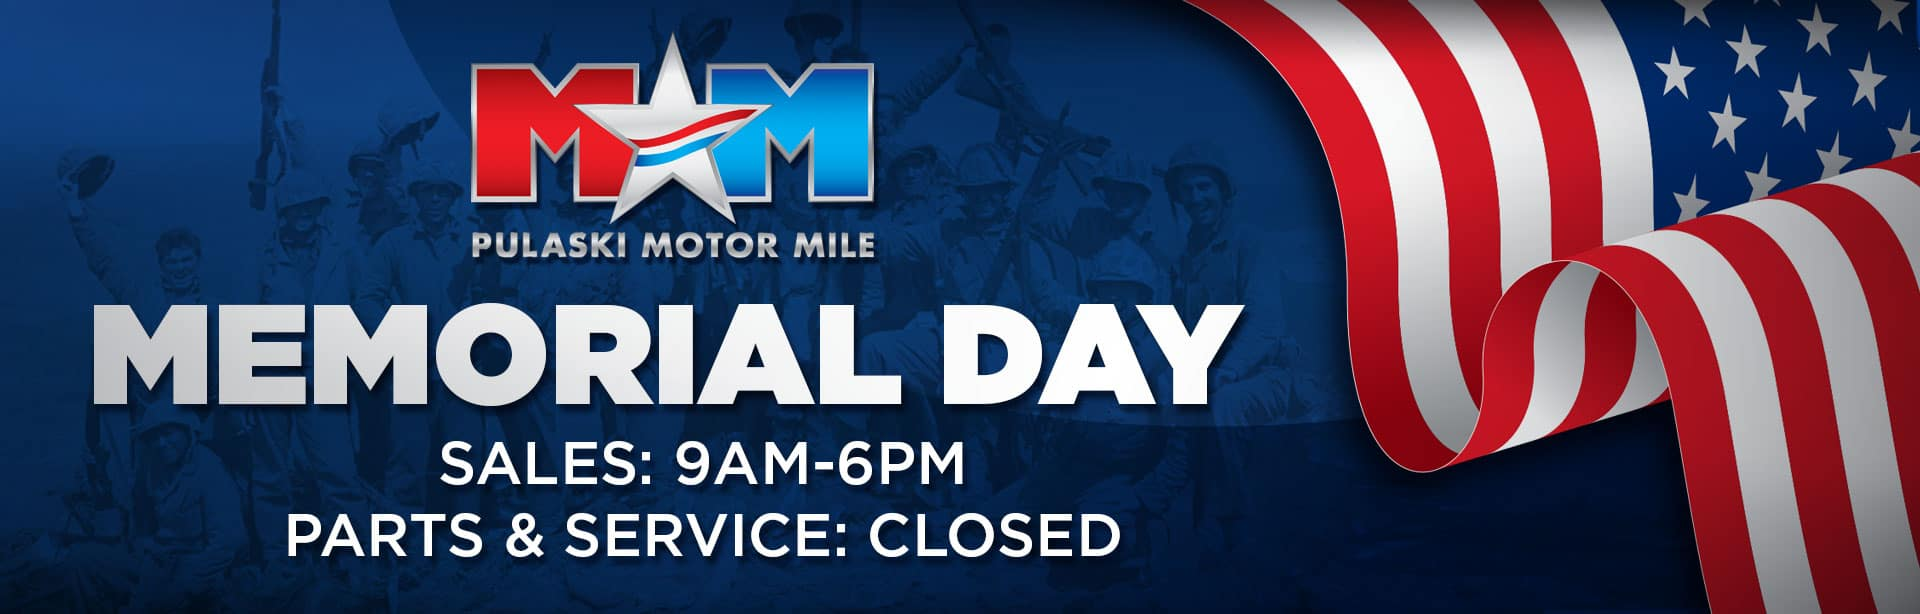 pmm_memorial_hours_1920x614